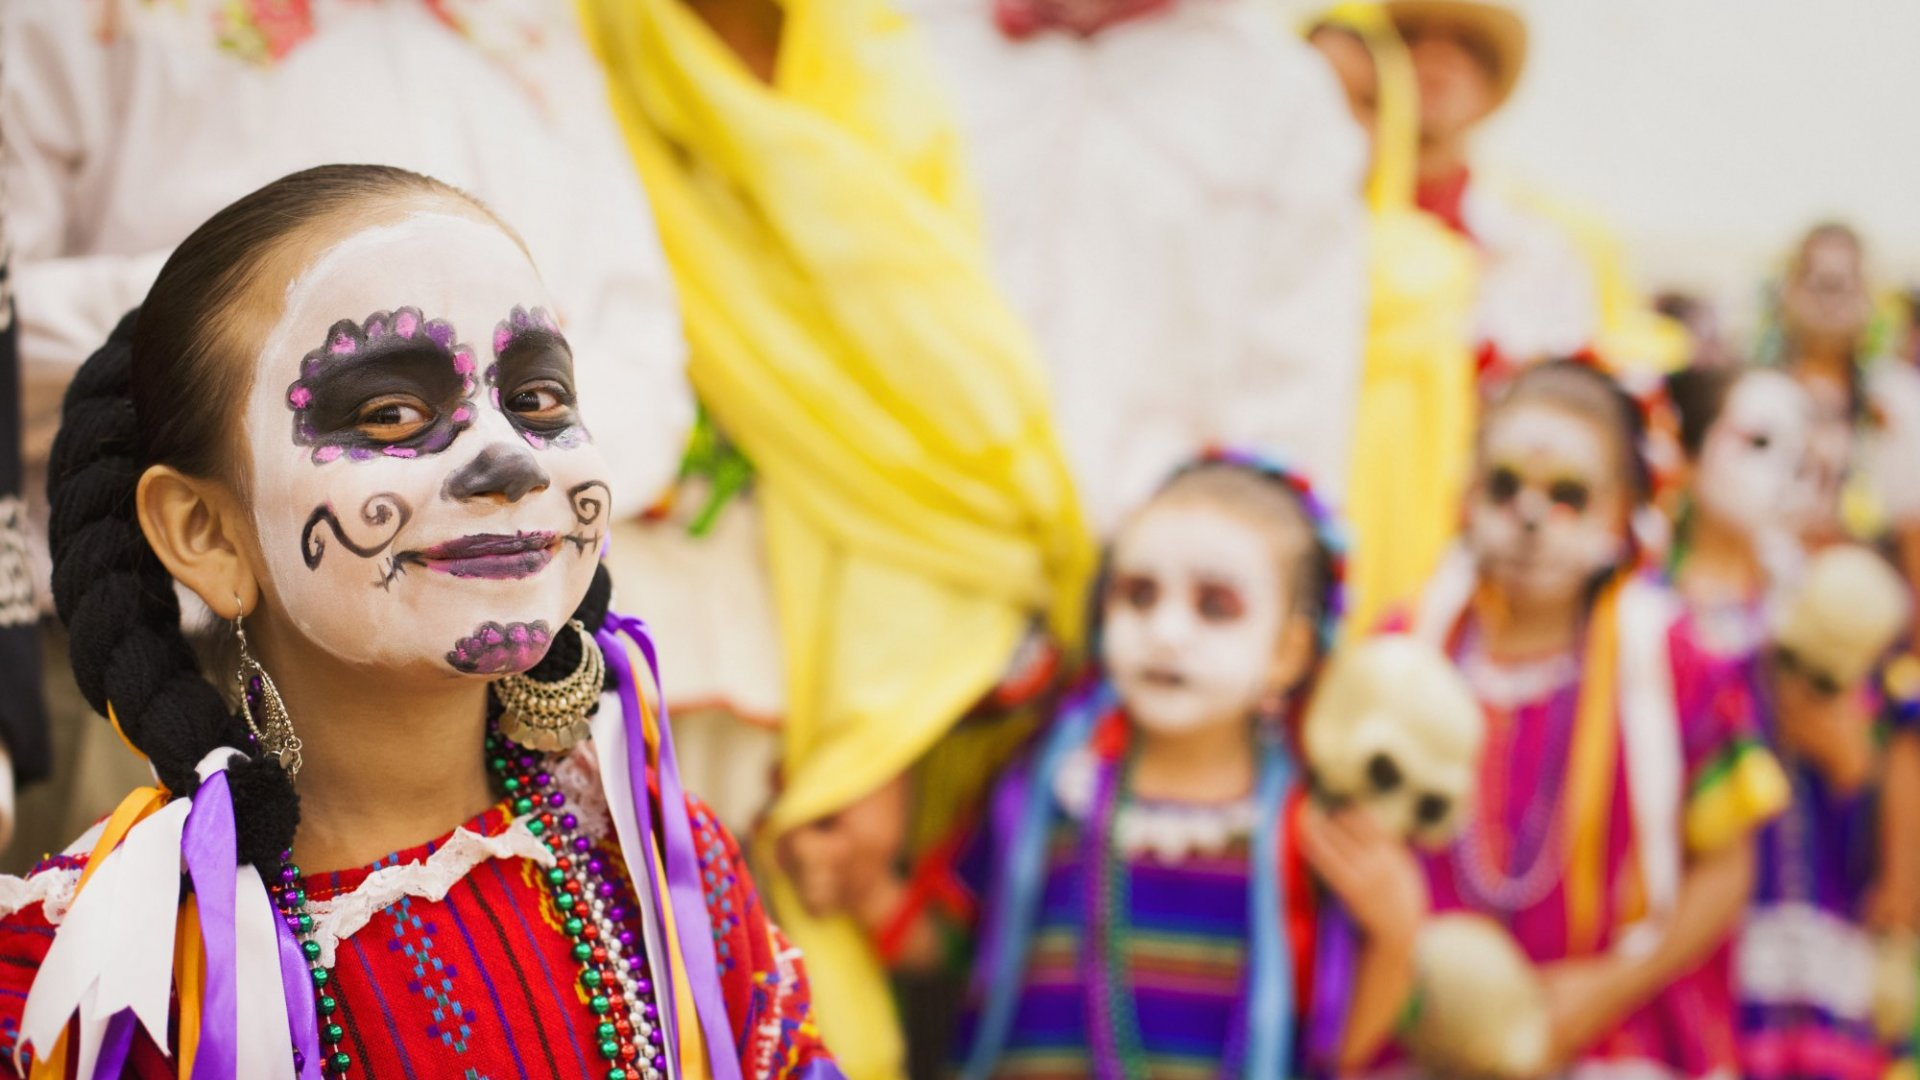 How Brands Are Capitalizing on This Major Mexican Holiday